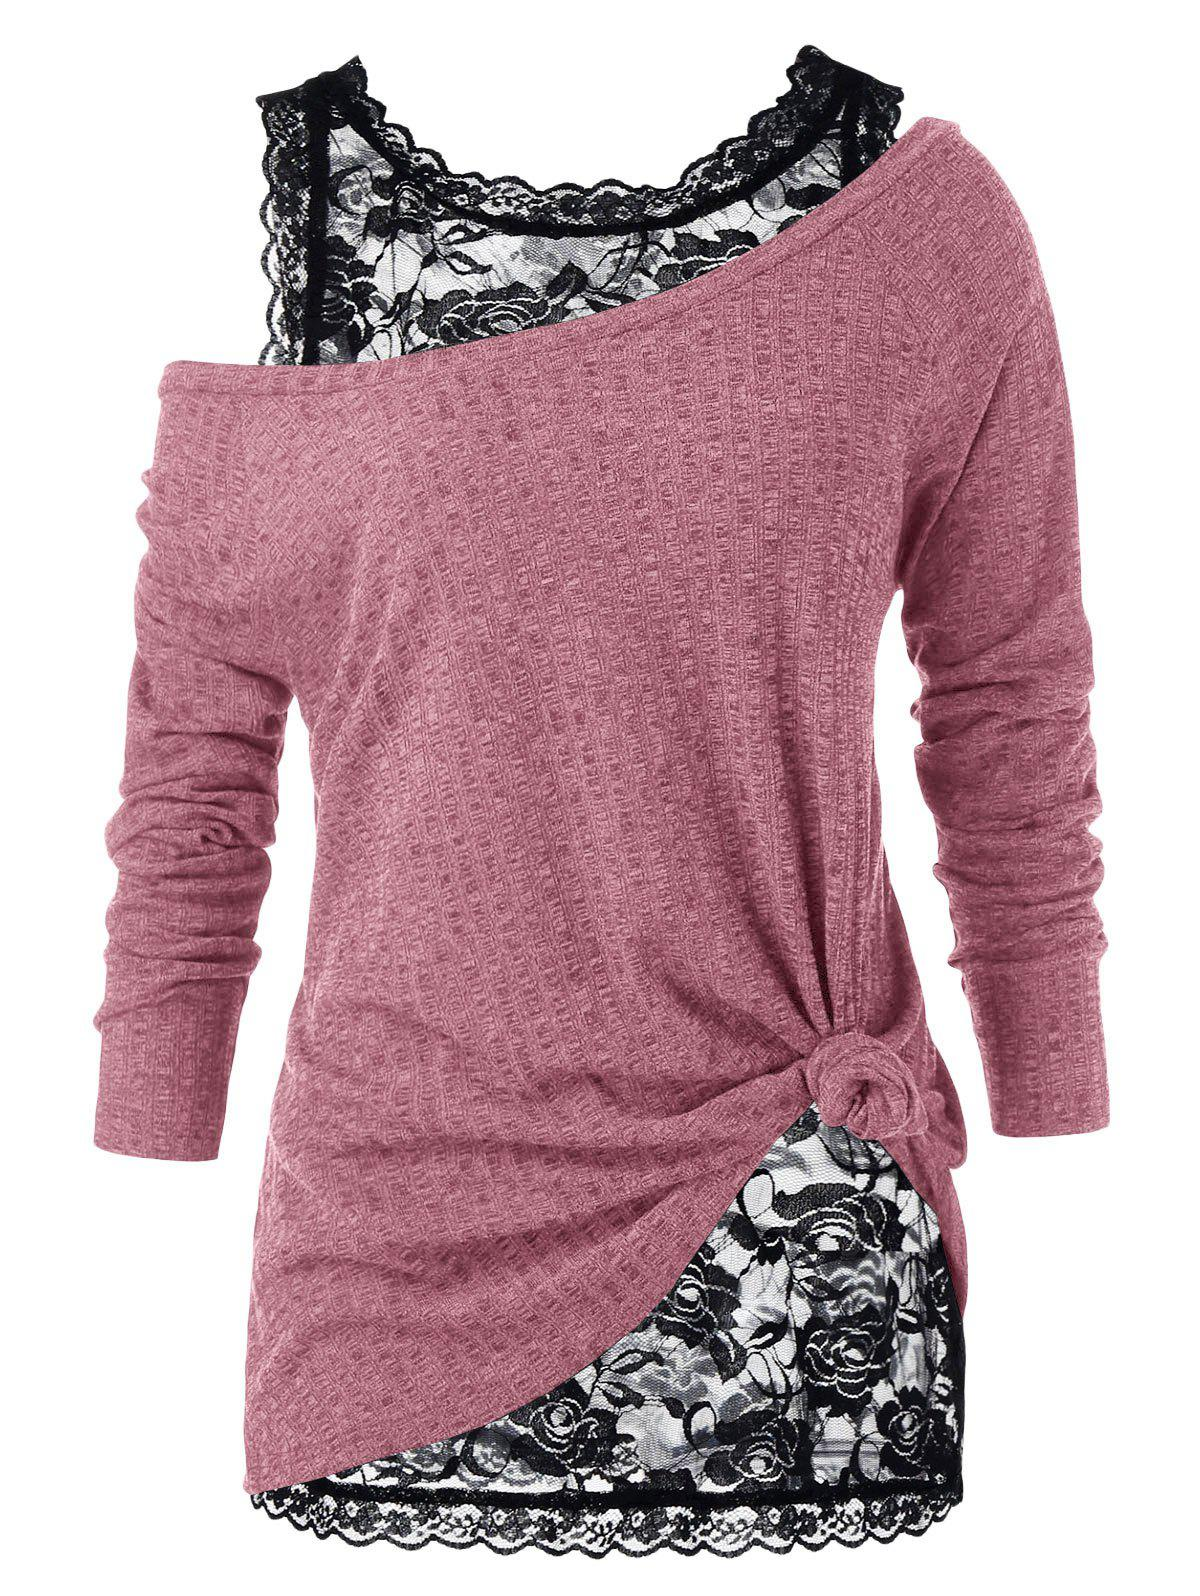 Plus Size Skew Neck Sweater with Floral Lace Top - PIG PINK 3X